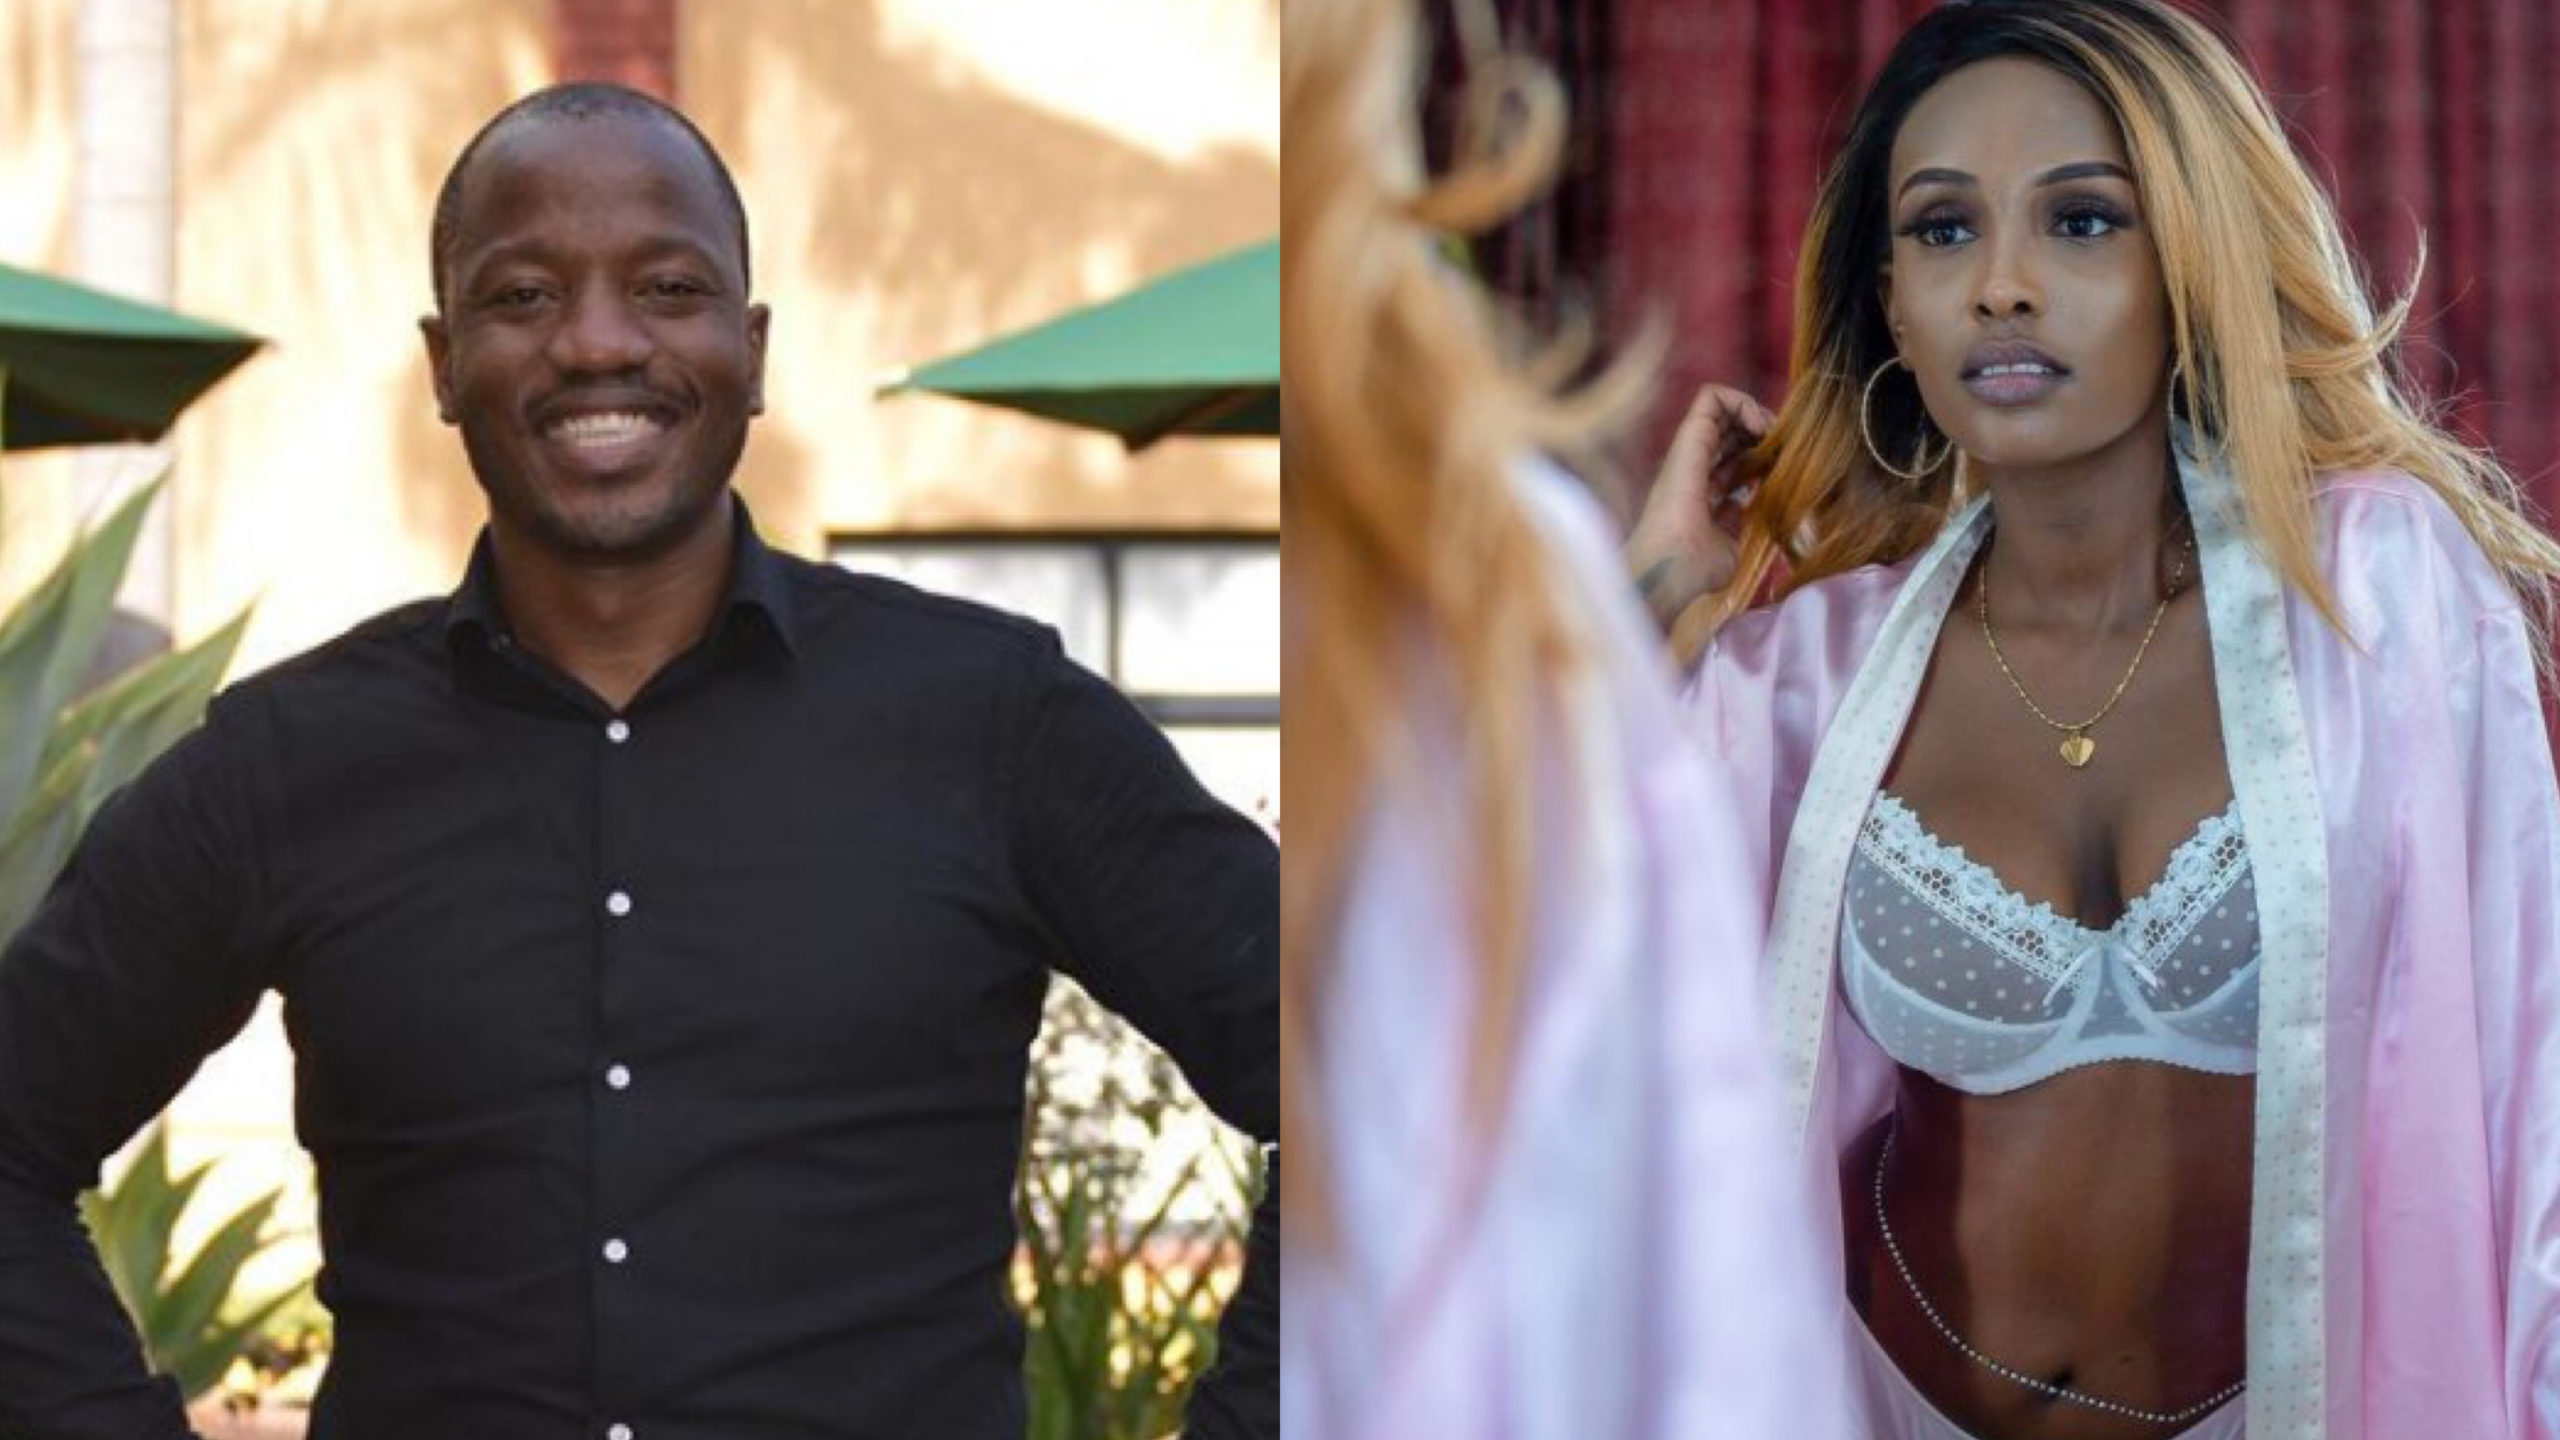 Priceless: Tony Kwalanda's reaction after Switch TV's Joyce Maina publicly calls off engagement (Video)